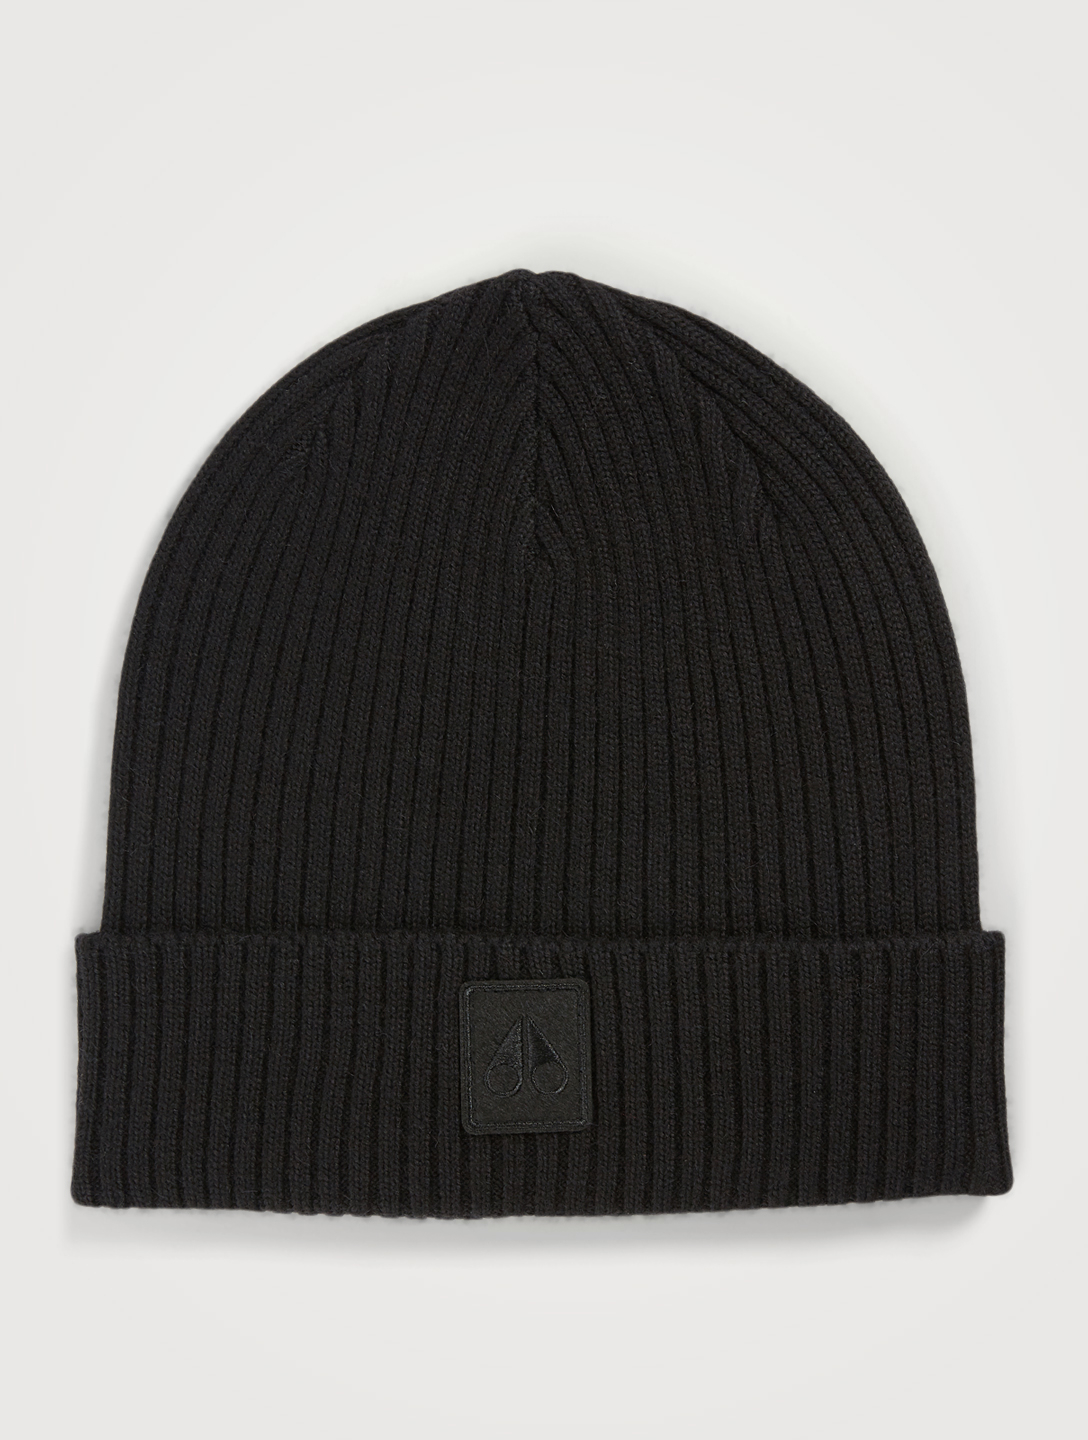 MOOSE KNUCKLES Mariner Ribbed Wool Toque Men's Black